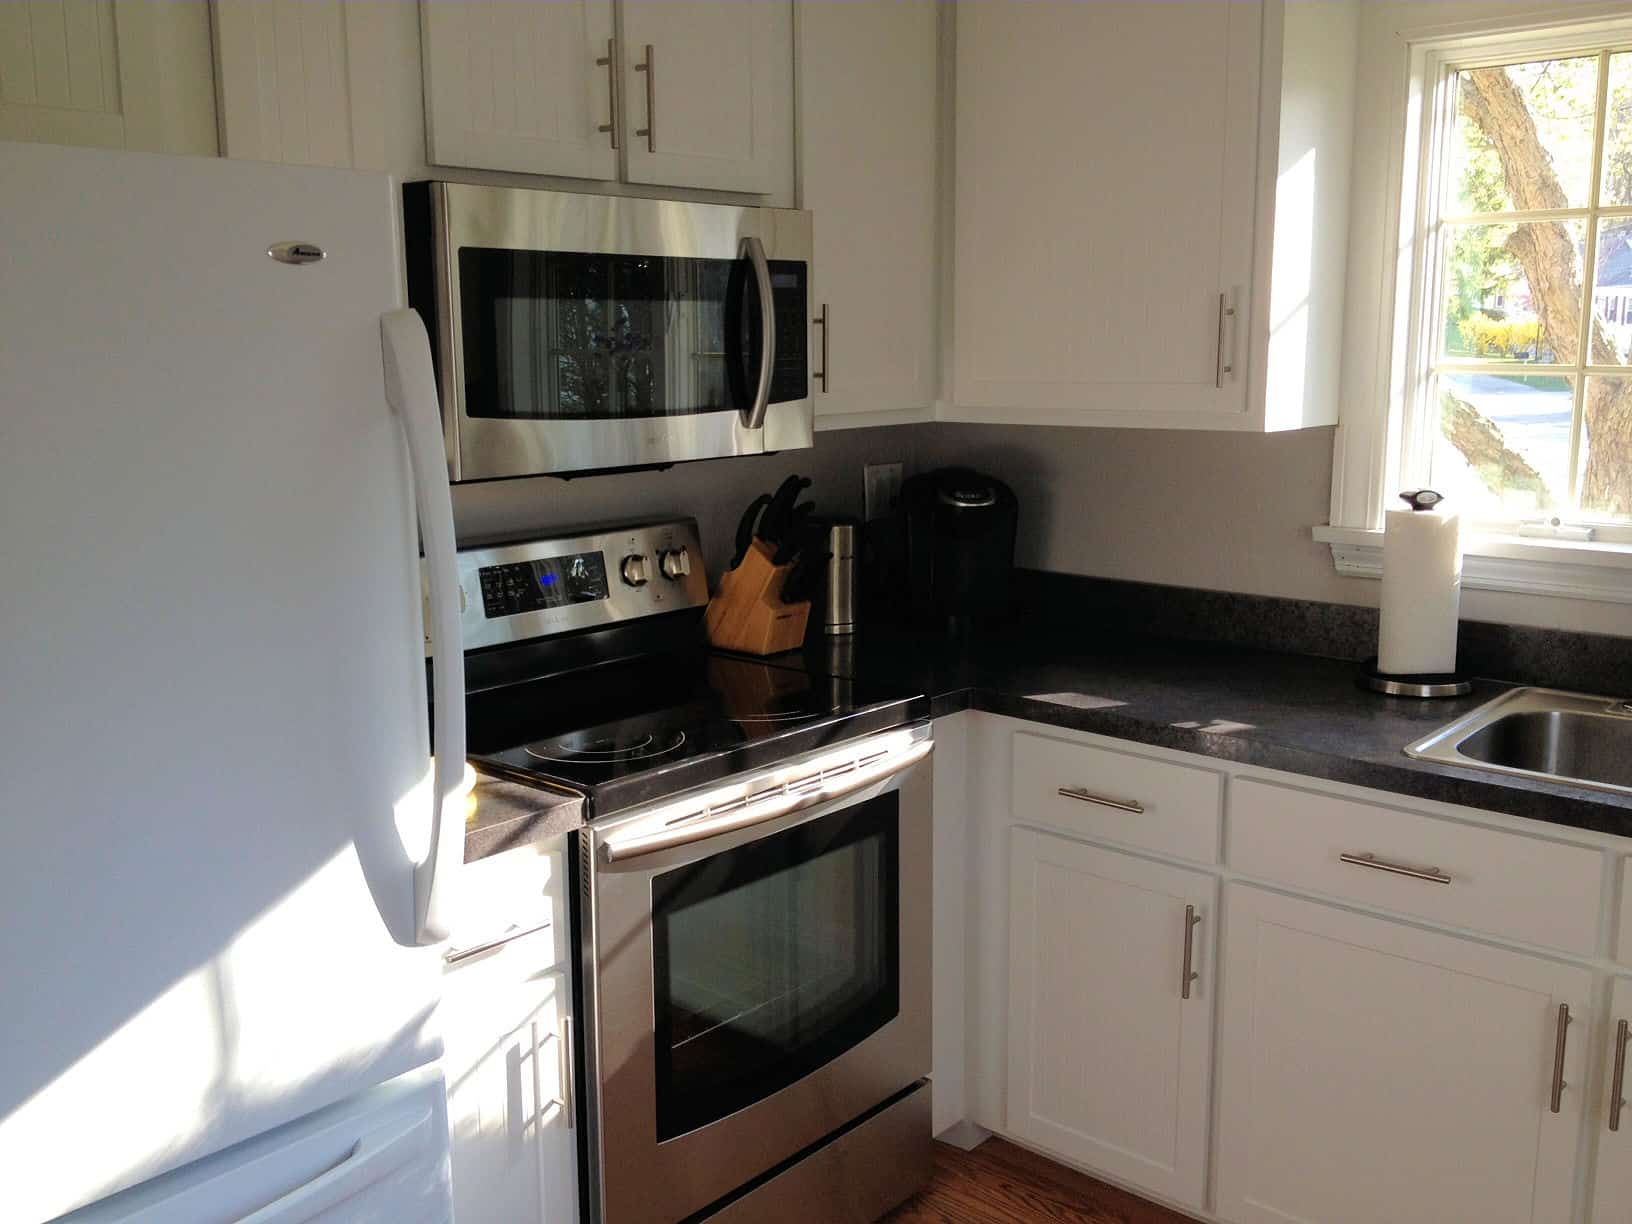 The corner of a kitchen, with white cabinets, stainless steel stove and microwave and a white fridge